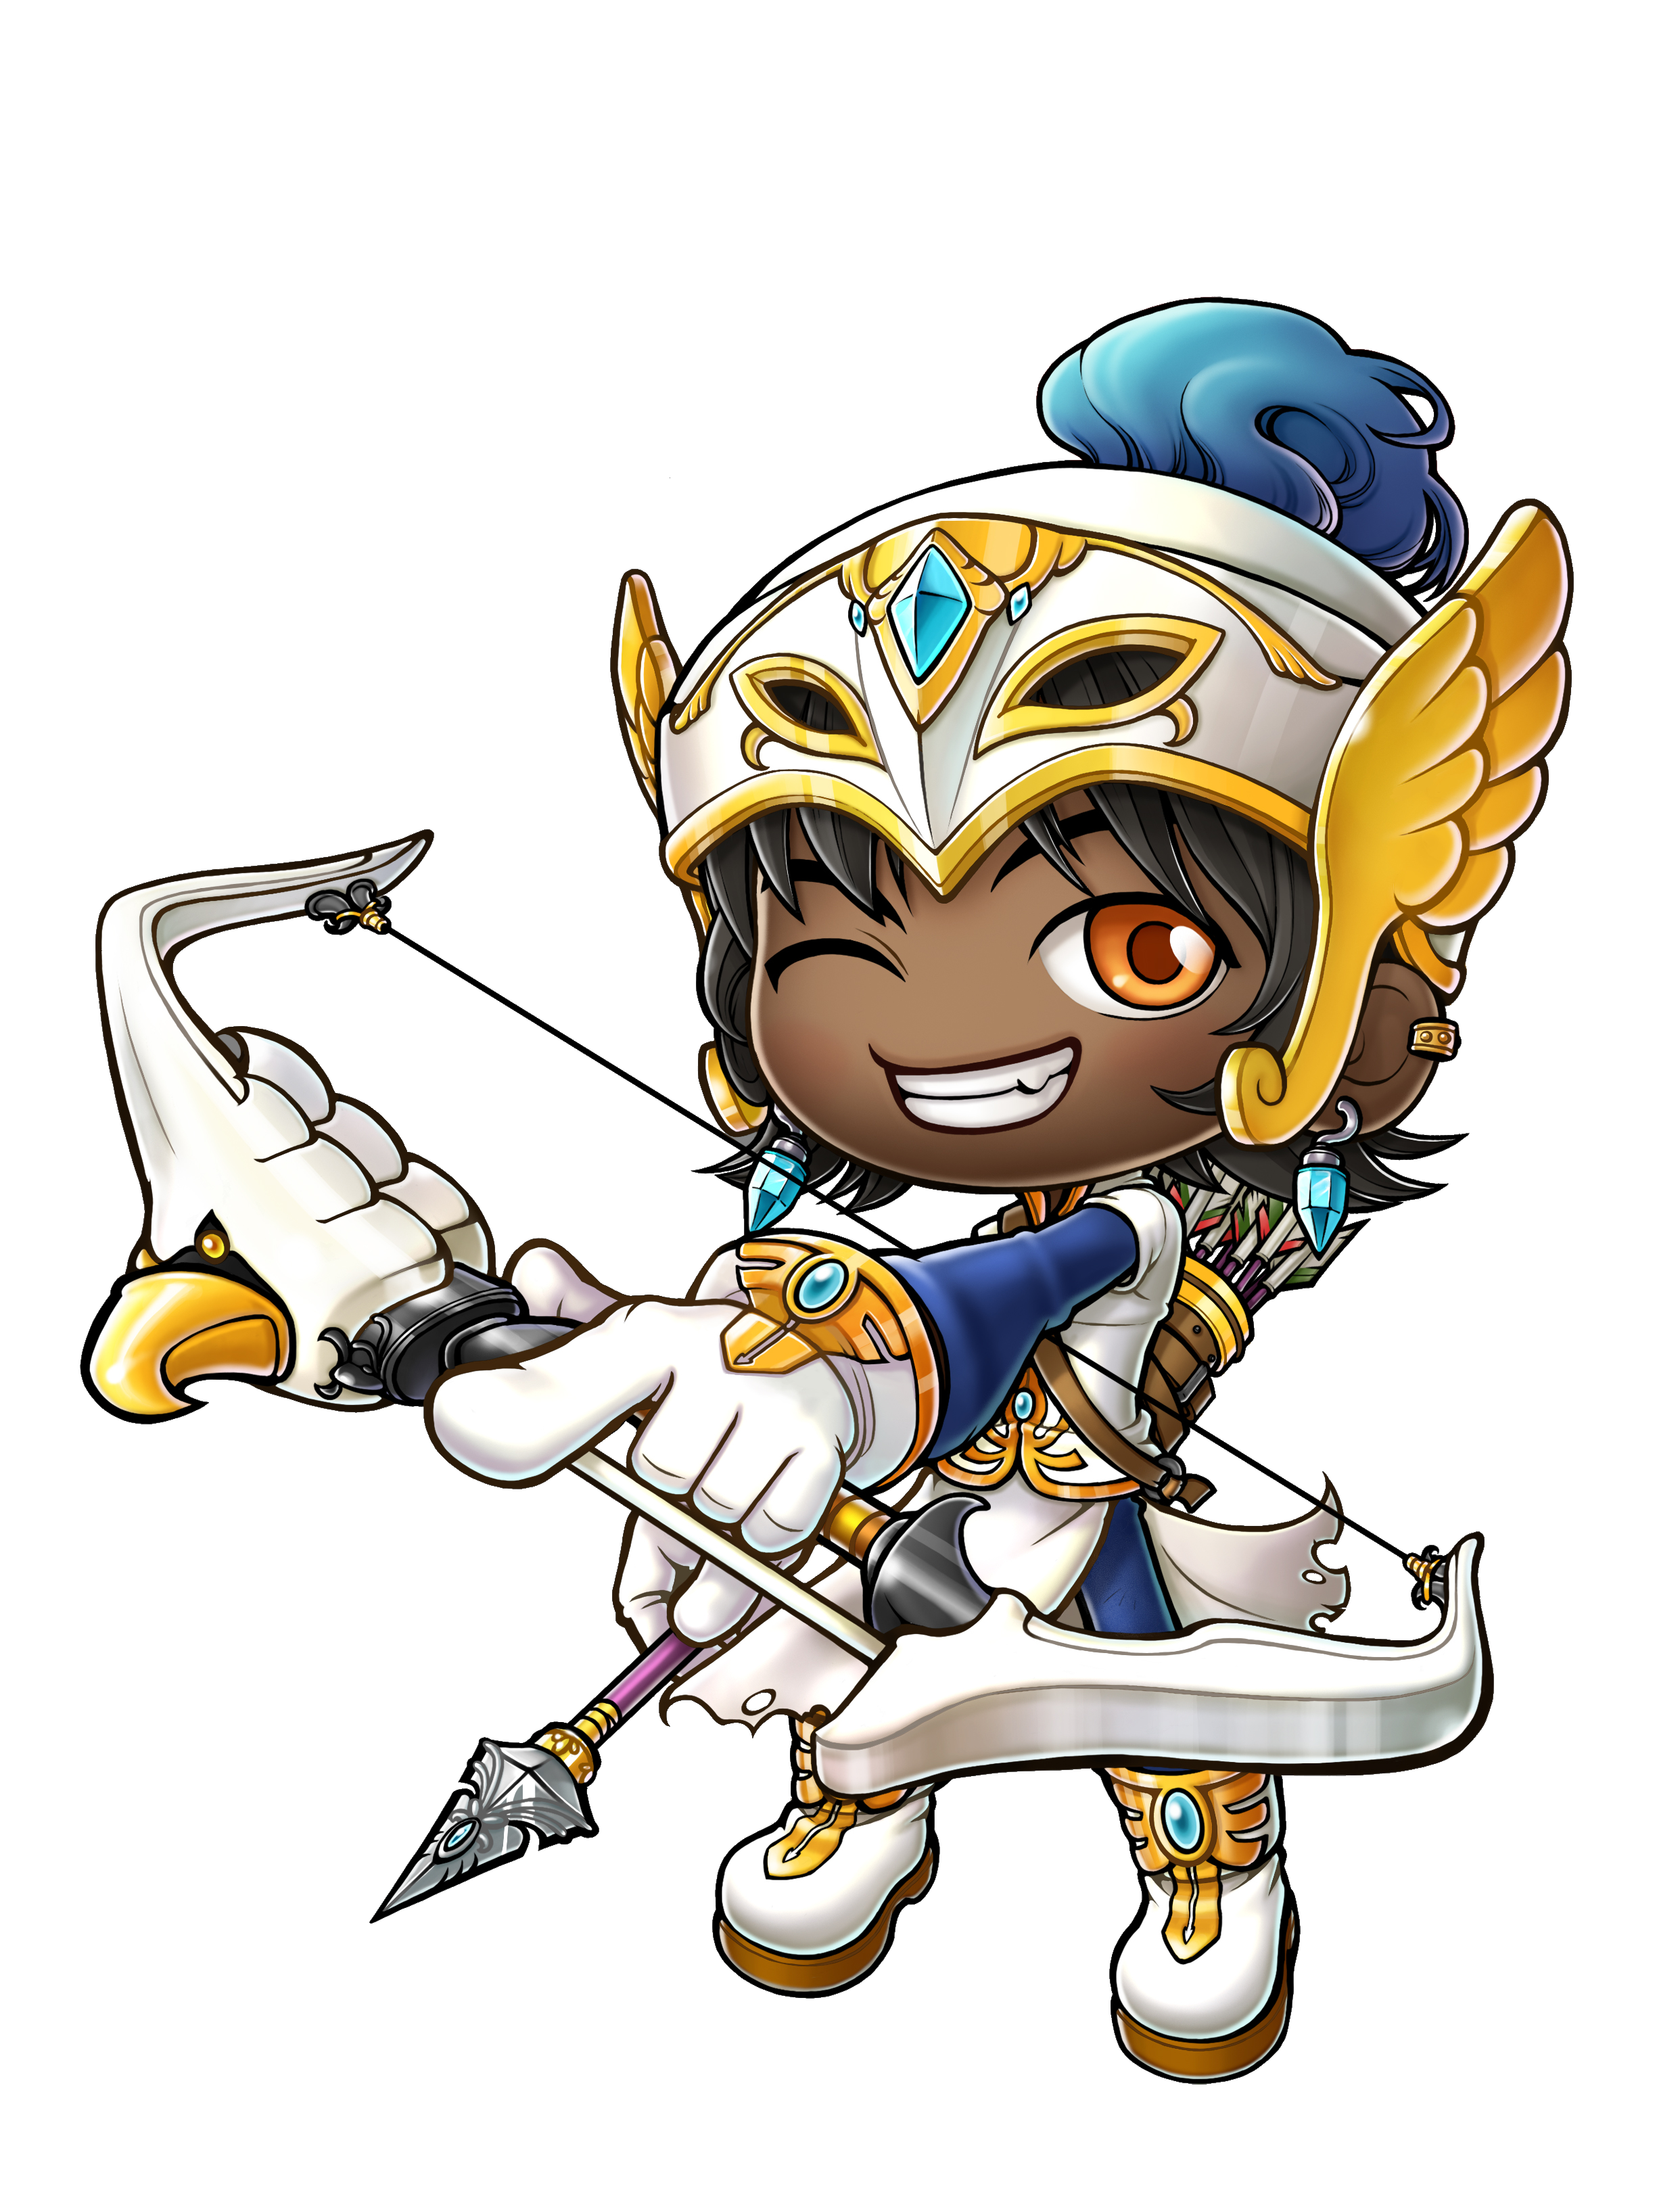 Archer clipart bowman. Kmst ver reorganization and